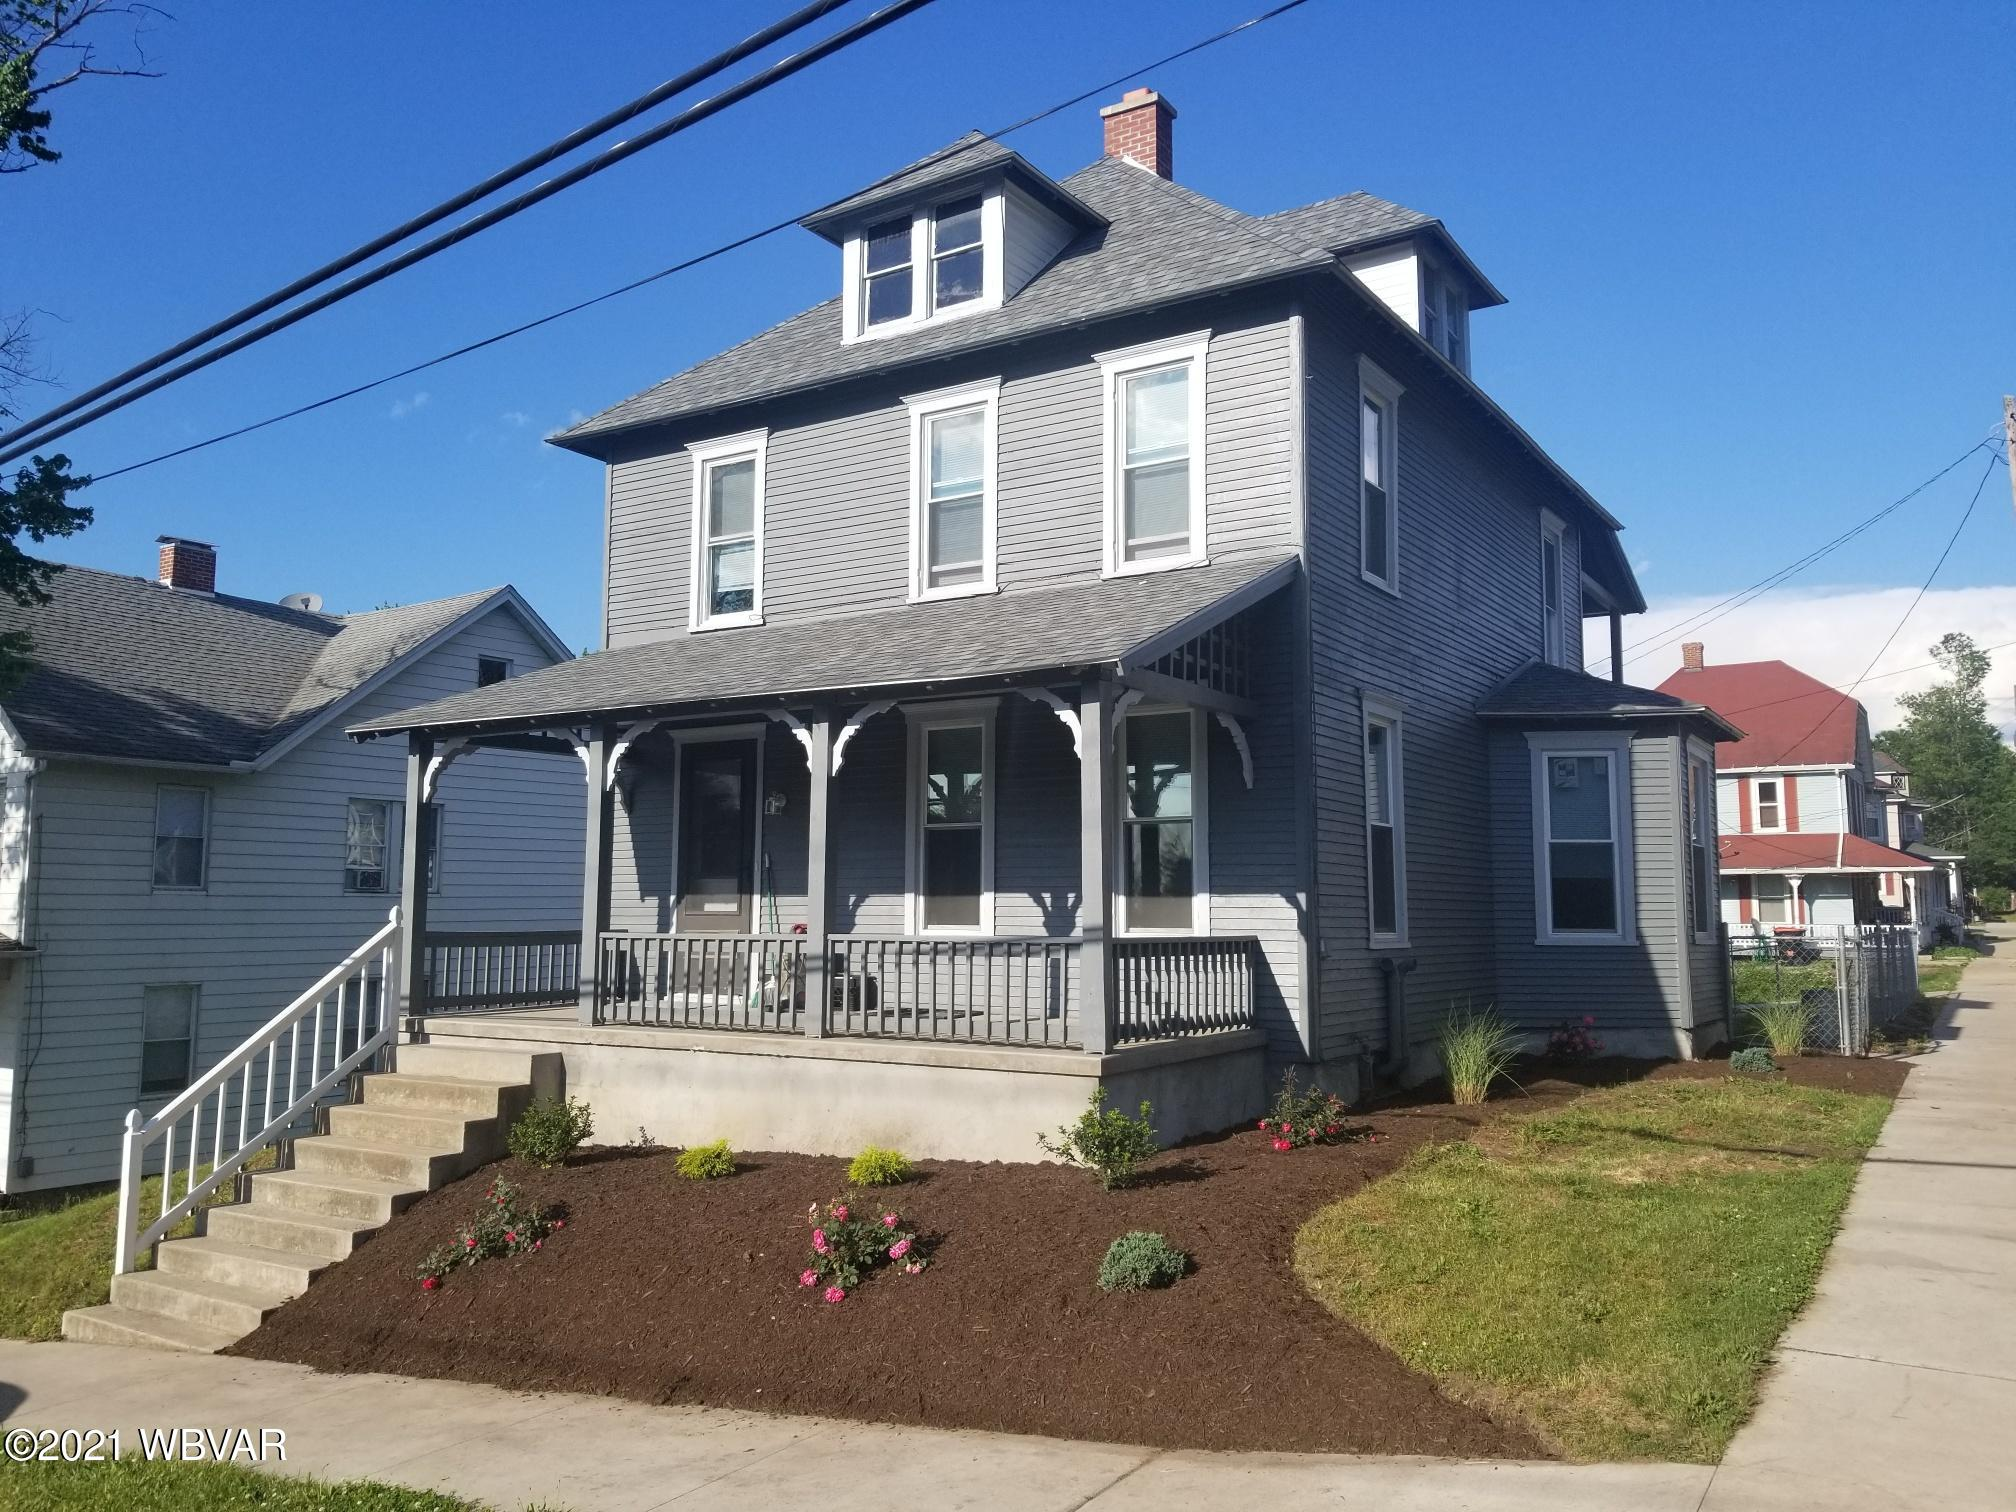 189 TURBOT AVENUE, Milton, PA 17847, 3 Bedrooms Bedrooms, ,2 BathroomsBathrooms,Residential,For sale,TURBOT,WB-92726